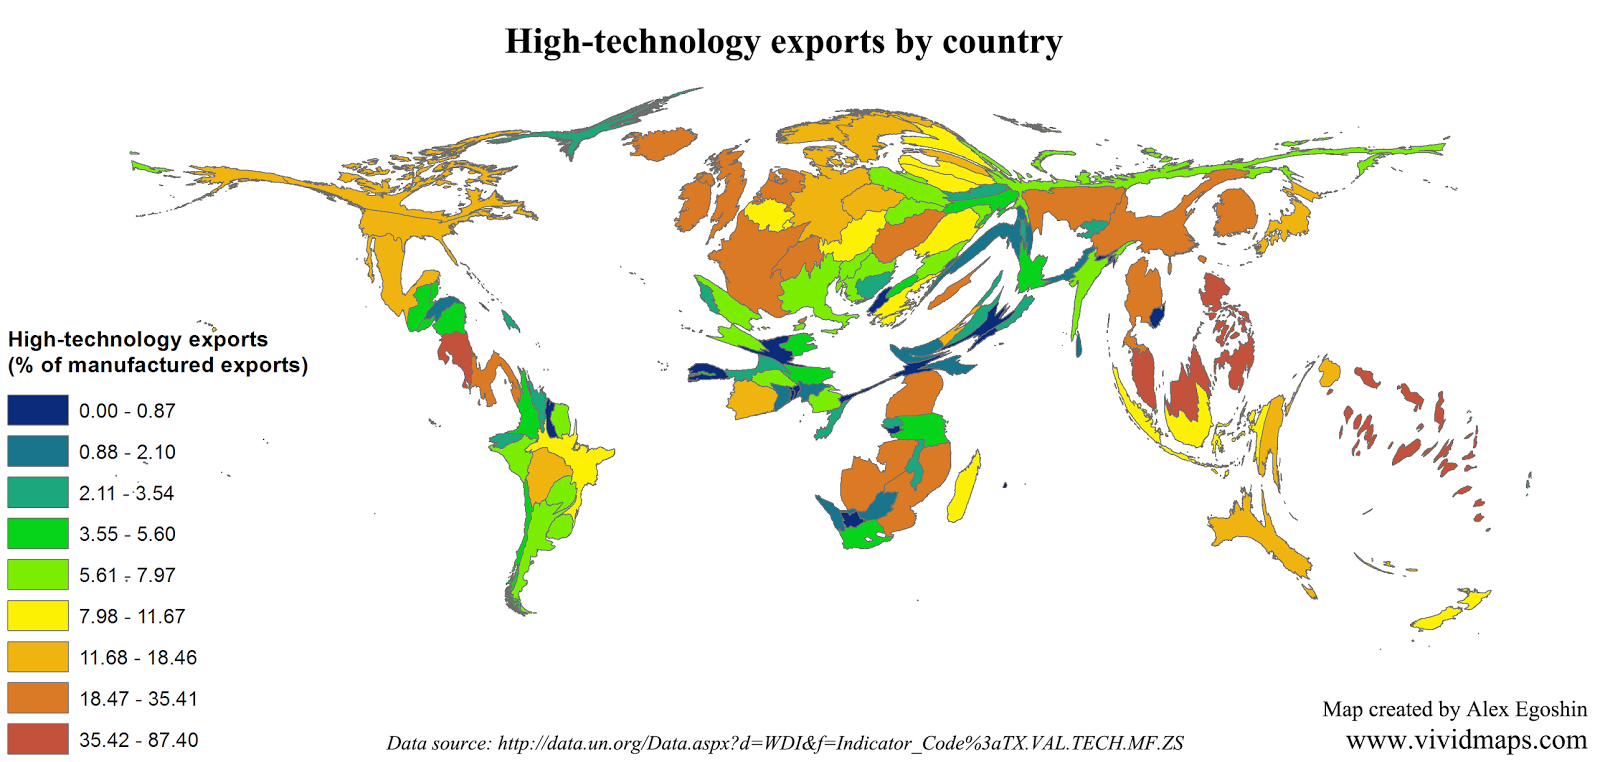 High-technology exports by country